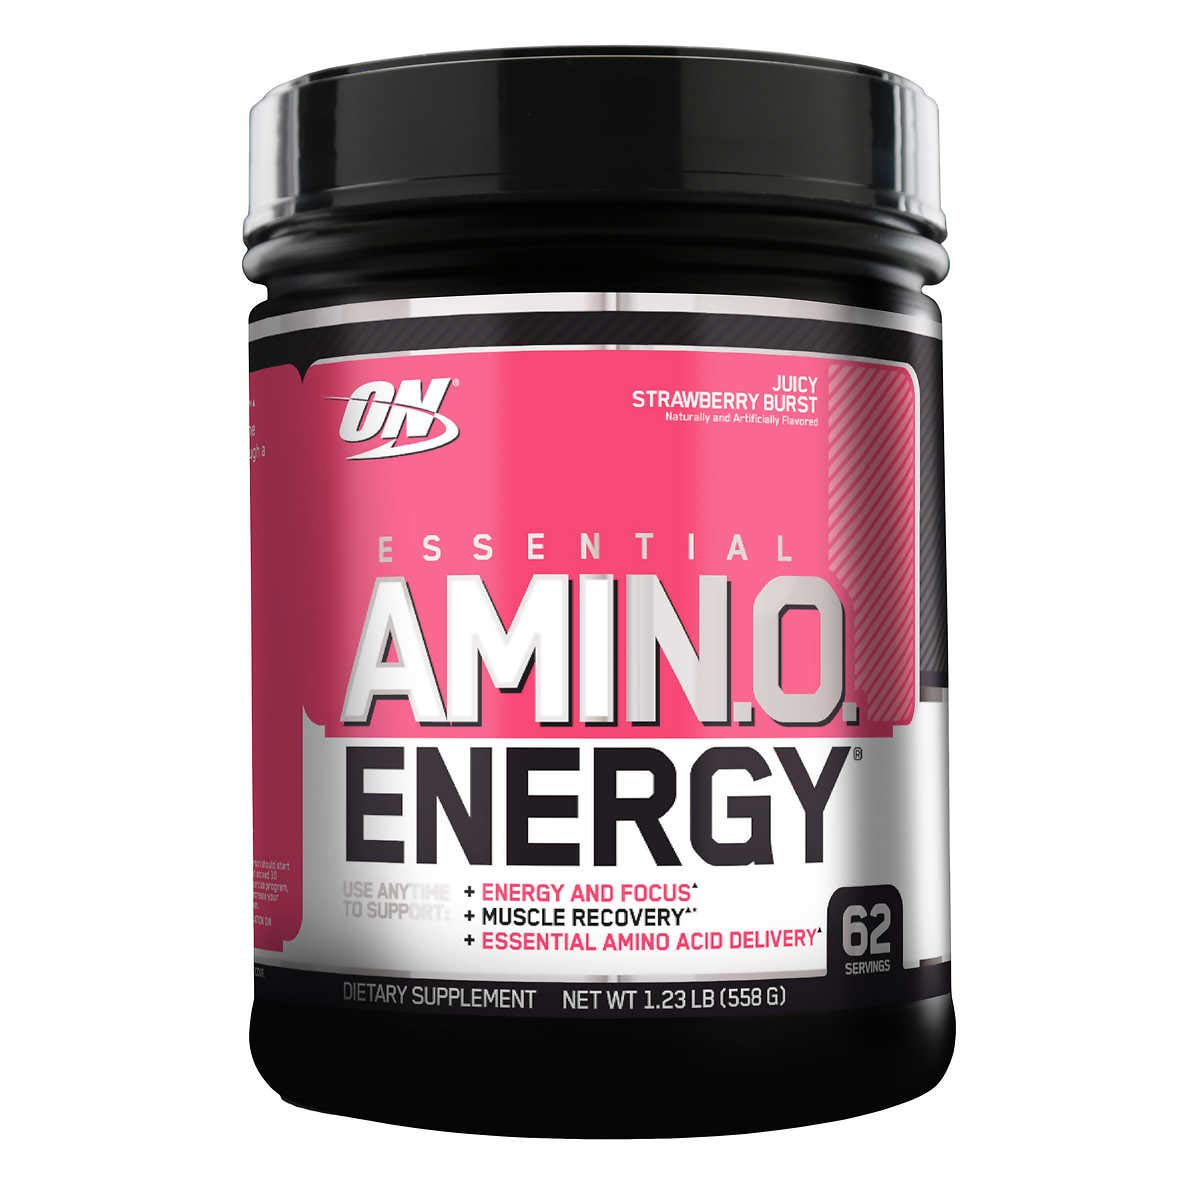 Optimum Nutrition Essential Amino Energy, Juicy Strawberry Burst, Preworkout and Postworkout Recovery with Essential Amino Acids and Caffeine from Natural Sources, 62 Servings, 1.23 lb, Pack of 1 by Optimum Nutrition